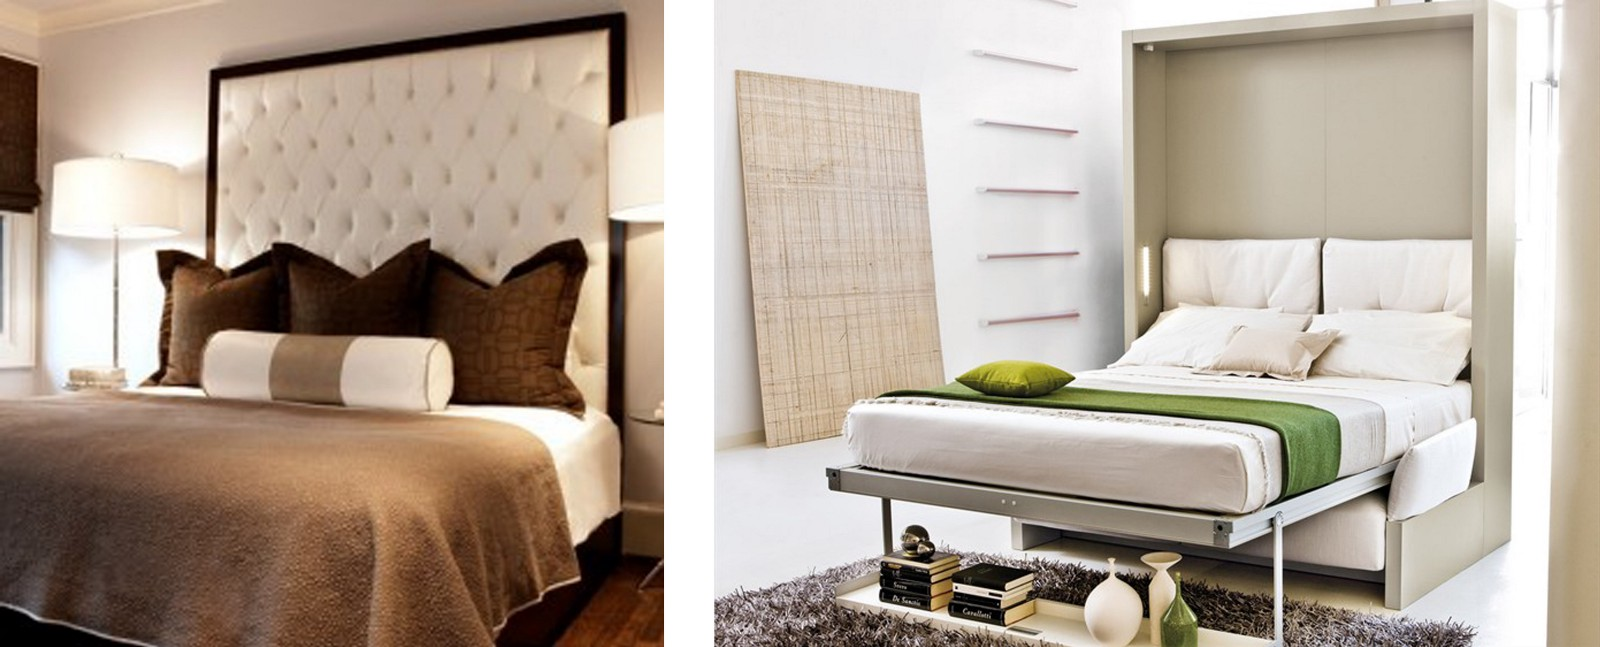 YES: Wall Mounted Headboard And Pop Up Bed That Hides In The Wall